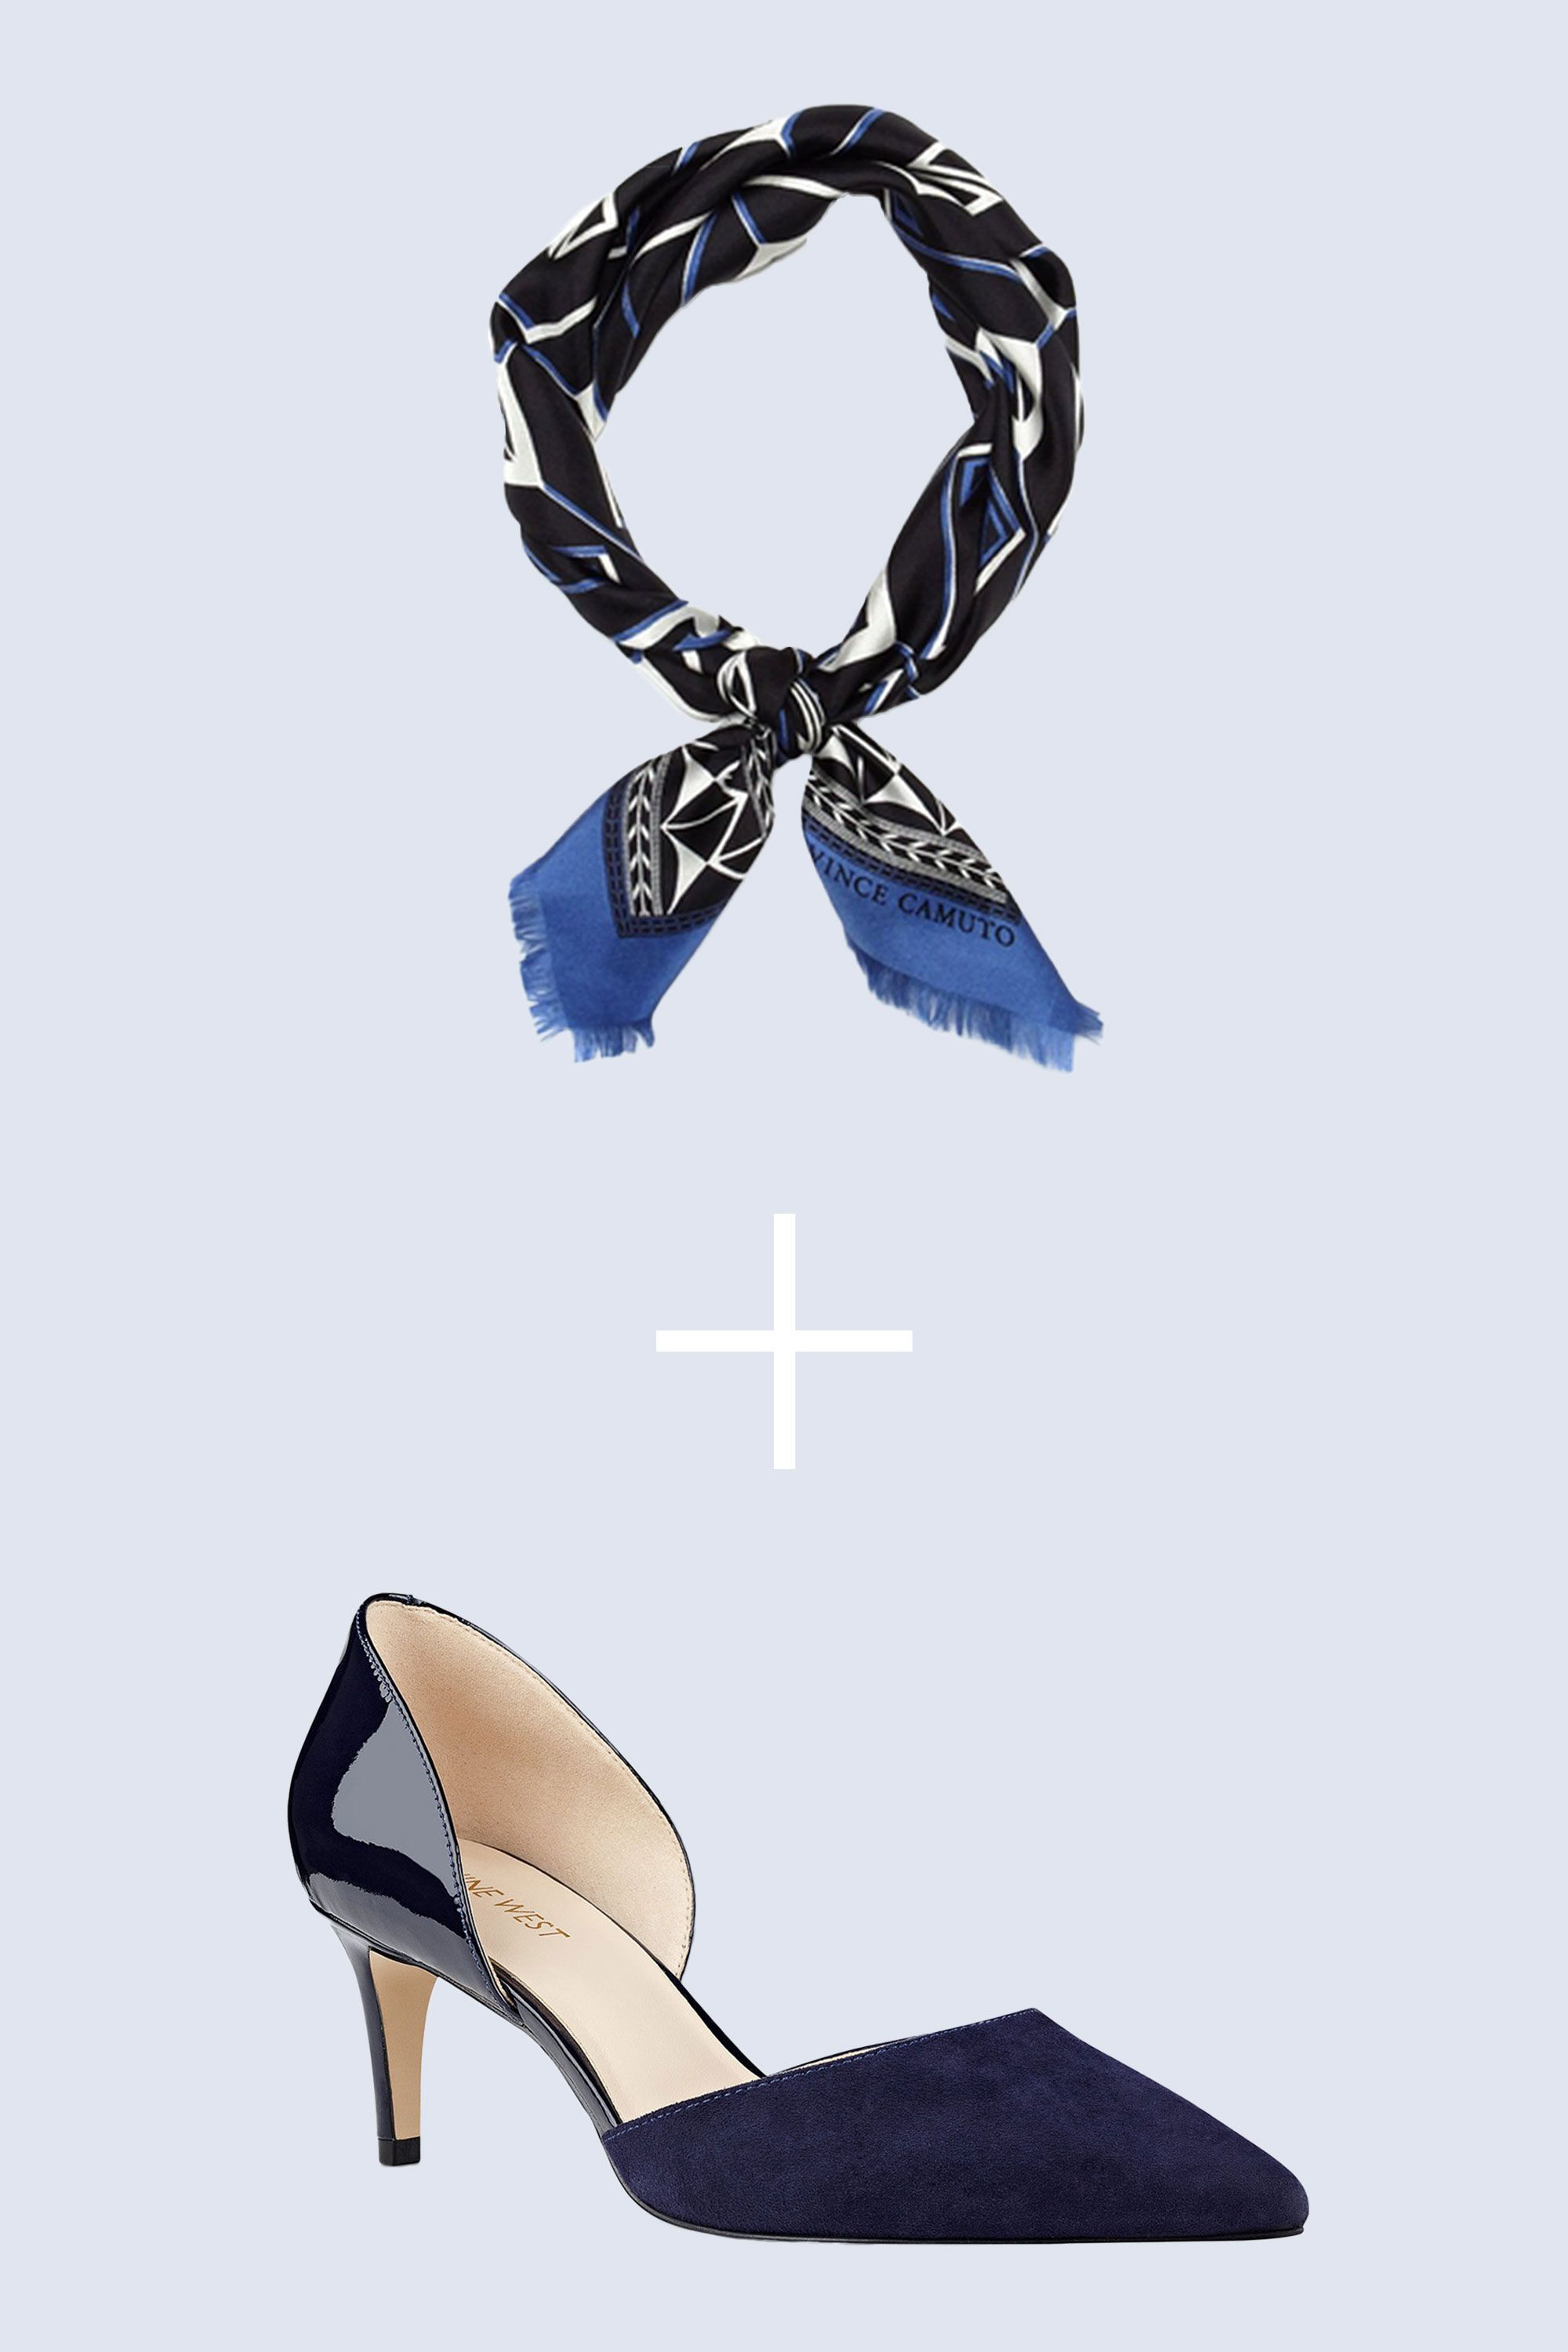 """<p>Every work wardrobe needs a great pump. This double-textured version, with its pointed toe and walkable heel, is as easy to wear as it is sleek. A silky blue scarf (in place of a necklace) lets your inner Parisian-stylealter-ego shine. </p><p><strong data-redactor-tag=""""strong"""">BUY IT: </strong><span class=""""redactor-invisible-space"""" data-verified=""""redactor"""" data-redactor-tag=""""span"""" data-redactor-class=""""redactor-invisible-space"""">Vince Camuto bandana, $38; <a href=""""http://www.vincecamuto.com/vince-camuto-zanzibar-print-bandana/051059424736.html"""" target=""""_blank"""" data-tracking-id=""""recirc-text-link"""">vincecamuto.com</a>. Nine West pumps, $50; <a href=""""http://www.ninewest.com/Solis-Pointy-Toe-d%27Orsay-Pumps/23969159,default,pd.html?variantColor=JJPO3A2&q=solis%20pumps"""" target=""""_blank"""" data-tracking-id=""""recirc-text-link"""">ninewest.com</a></span><br></p>"""